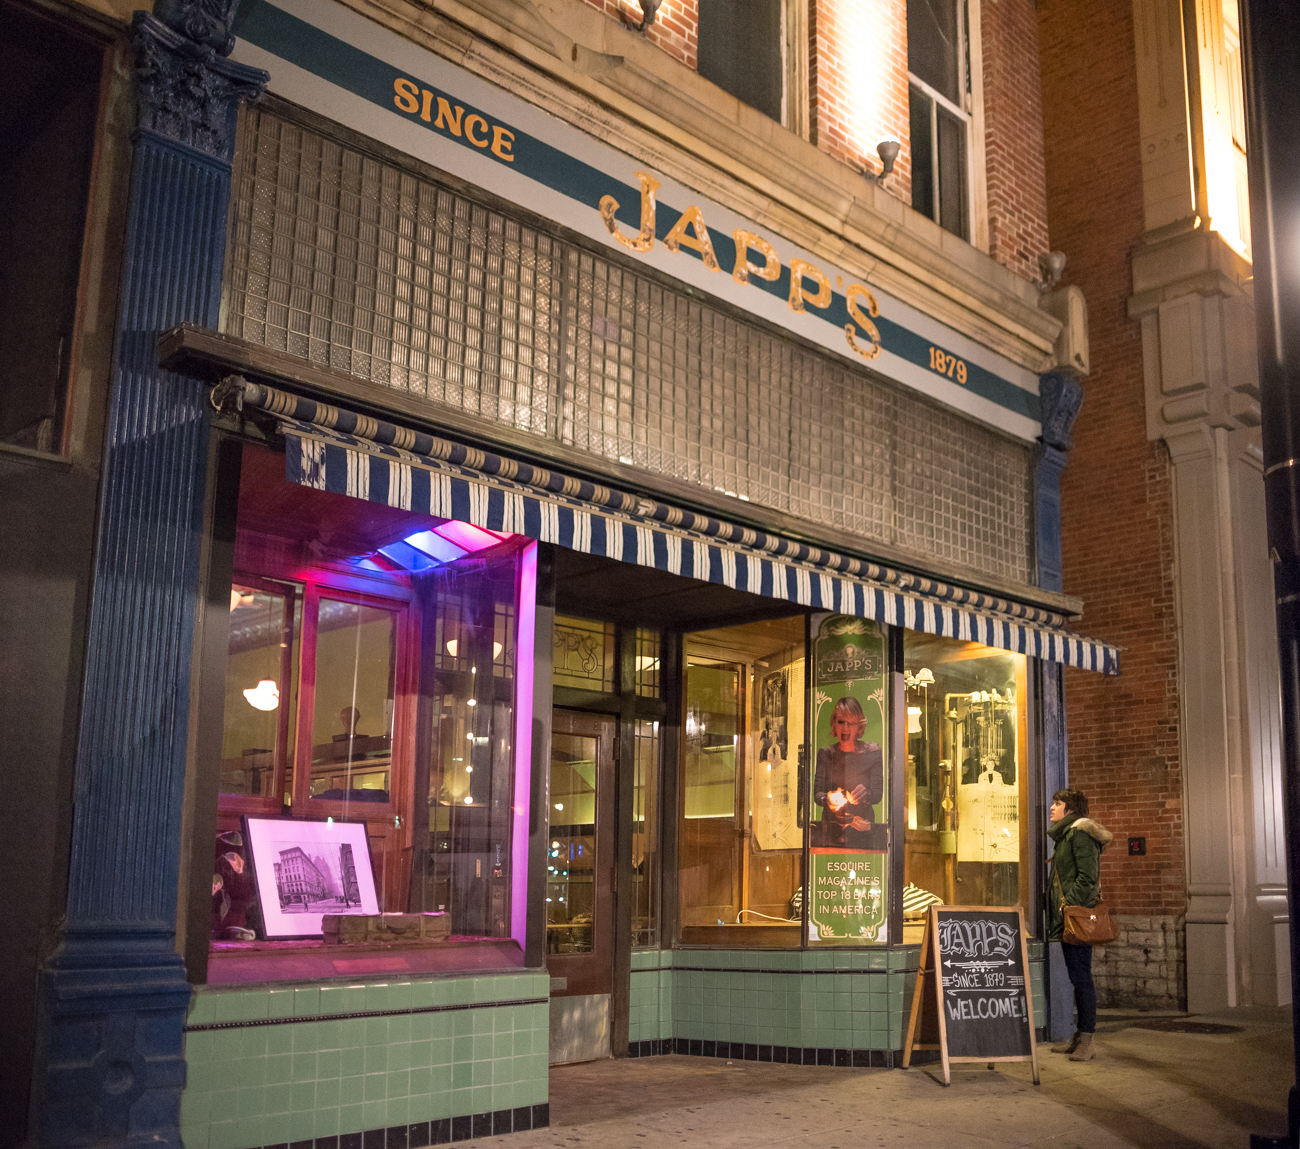 BAR: Japps / LOCATION: 1205 Elm Street / CLOSEST STOP: Hanke Exchange Station (12th & Main) // IMAGE: Phil Armstrong, Cincinnati Refined /// Published: 11.30.16